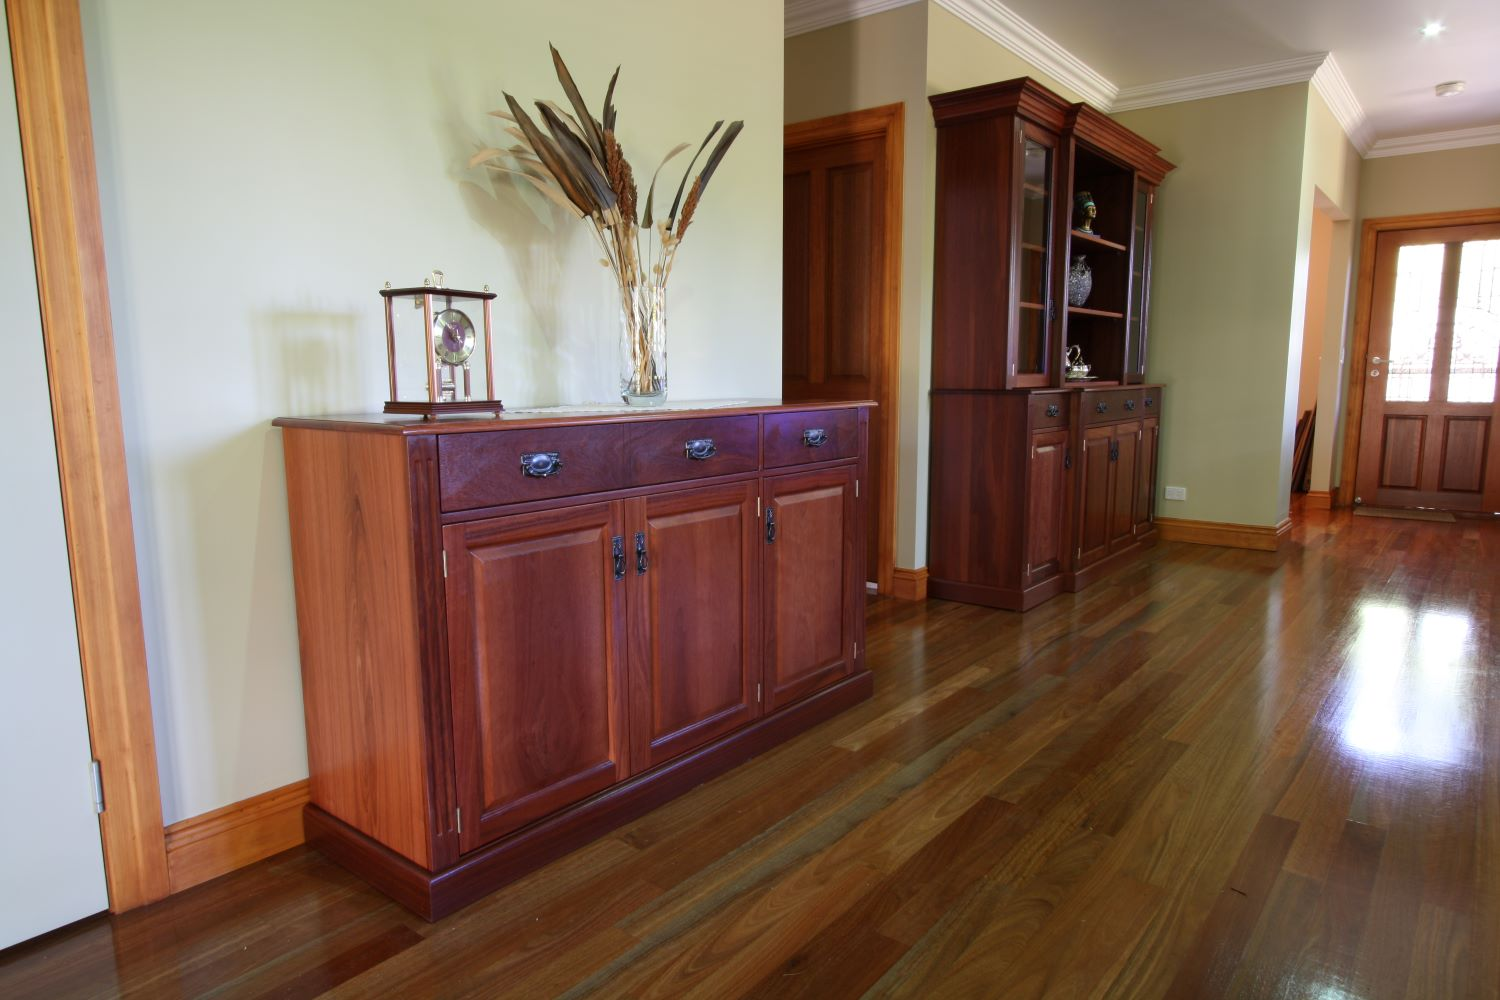 Classic appeal, sideboard custom made to blend beautifully with existing cabinetry